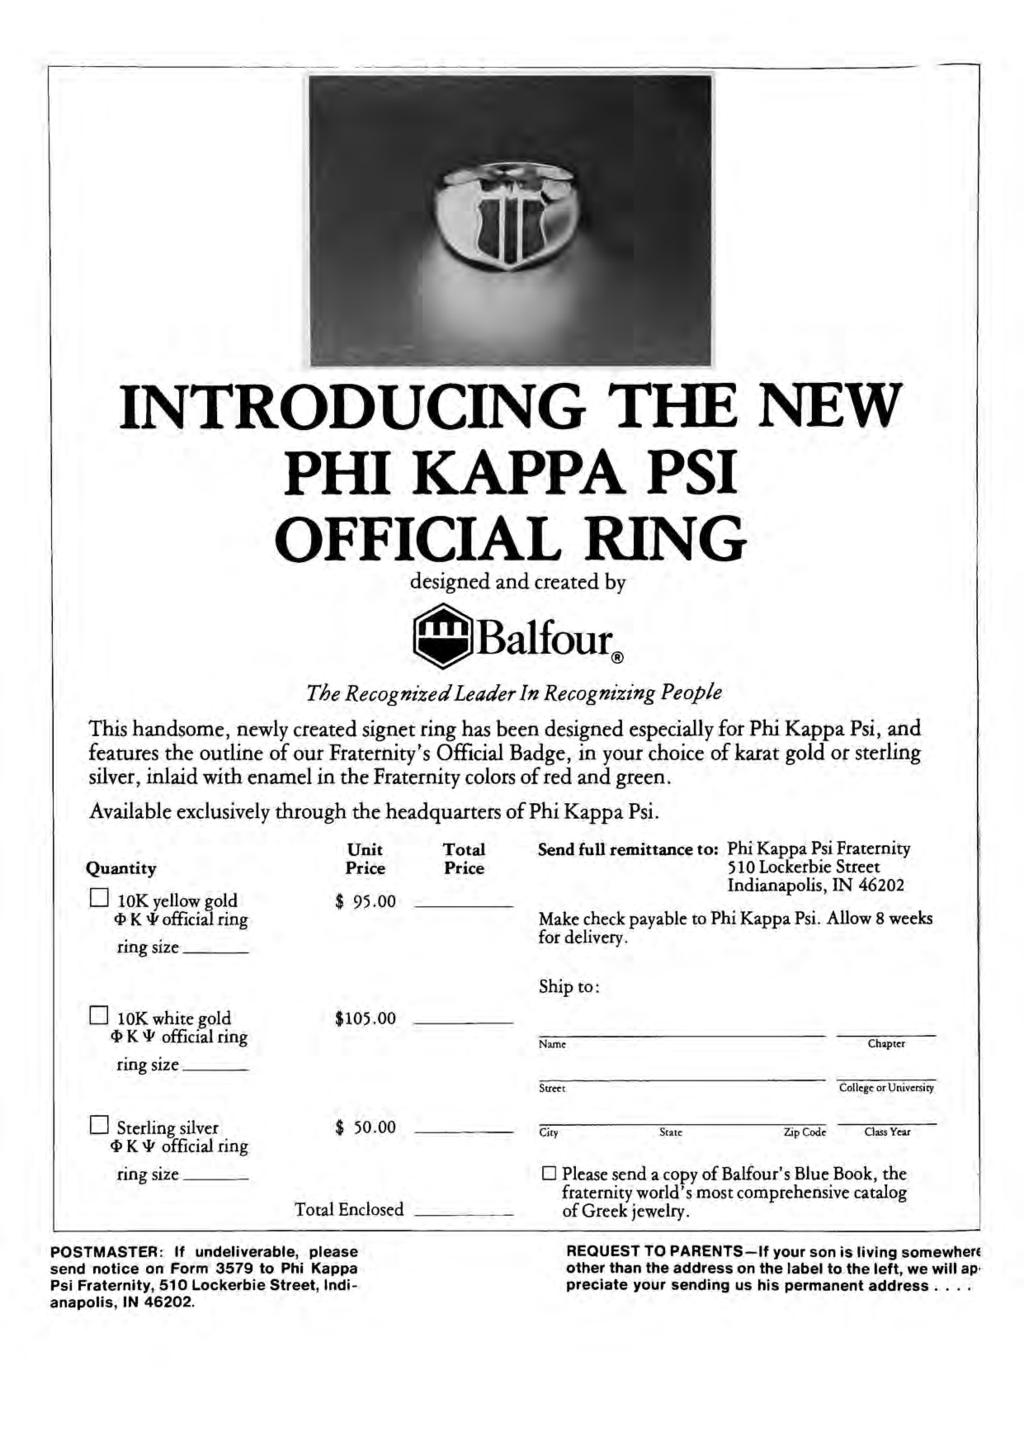 INTRODUCING THE NEW PHI KAPPA PSI OFFICIAL RING designed and created by Balfour^ The Recognized Leader In Recognizing People This handsome, newly created signet ring has been designed especially for